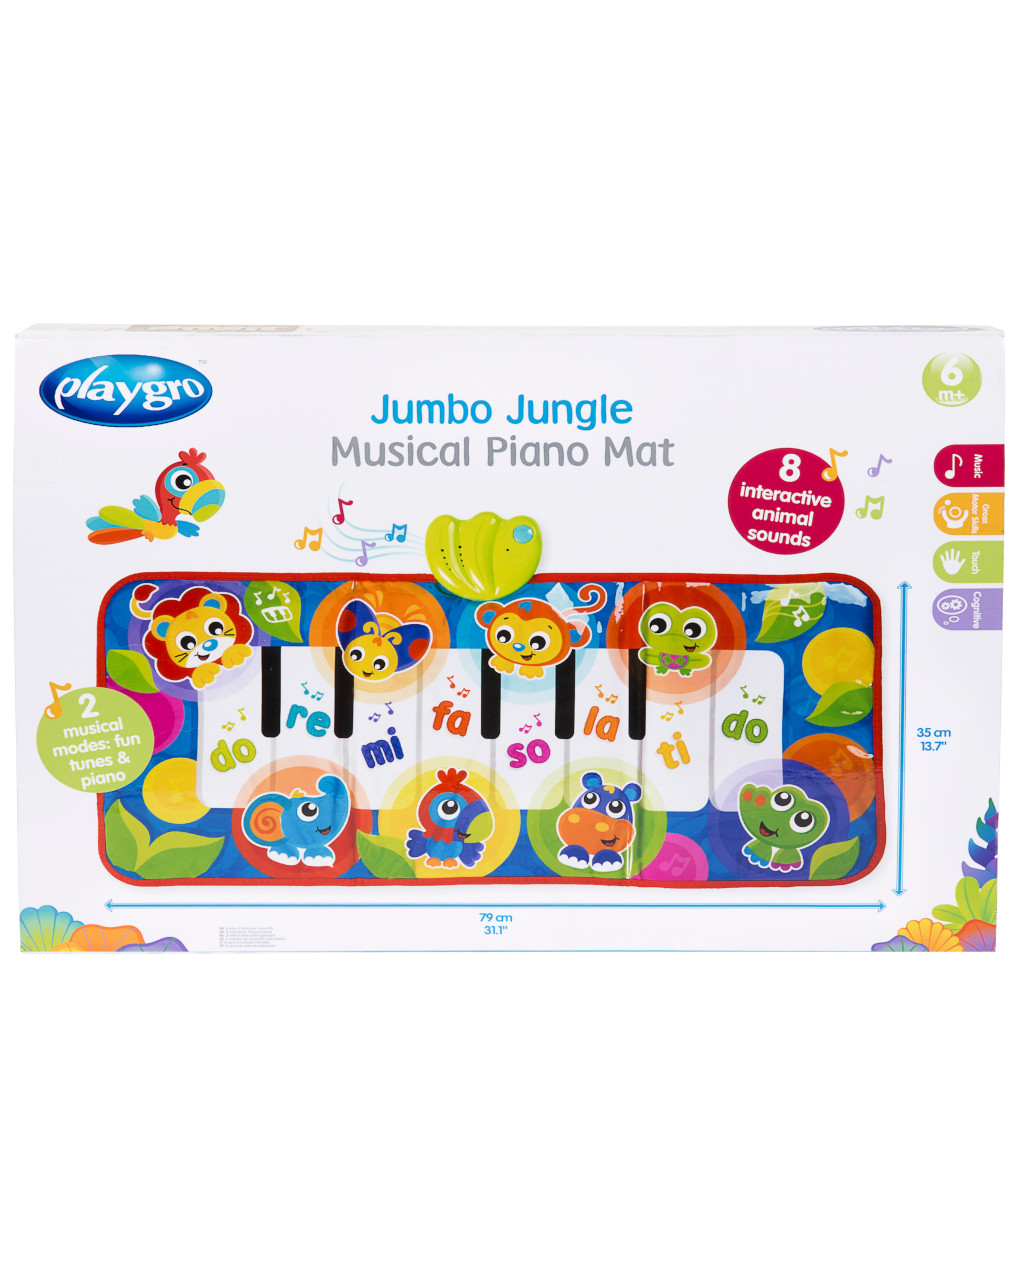 Playgro - jumbo jungle musical piano mat - Playgro